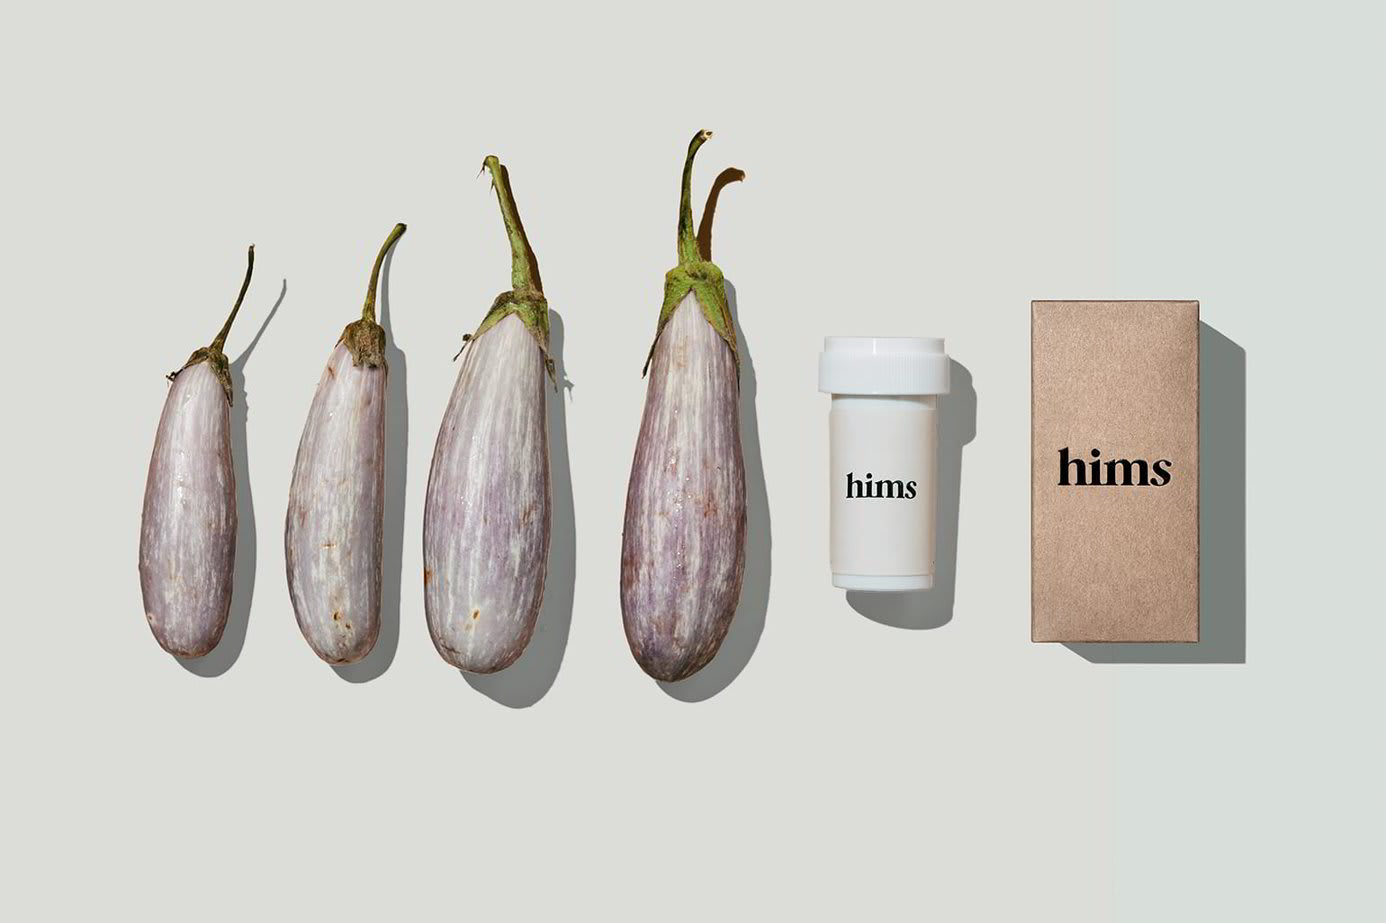 A series of eggplants accompanied by Hims ED medication.